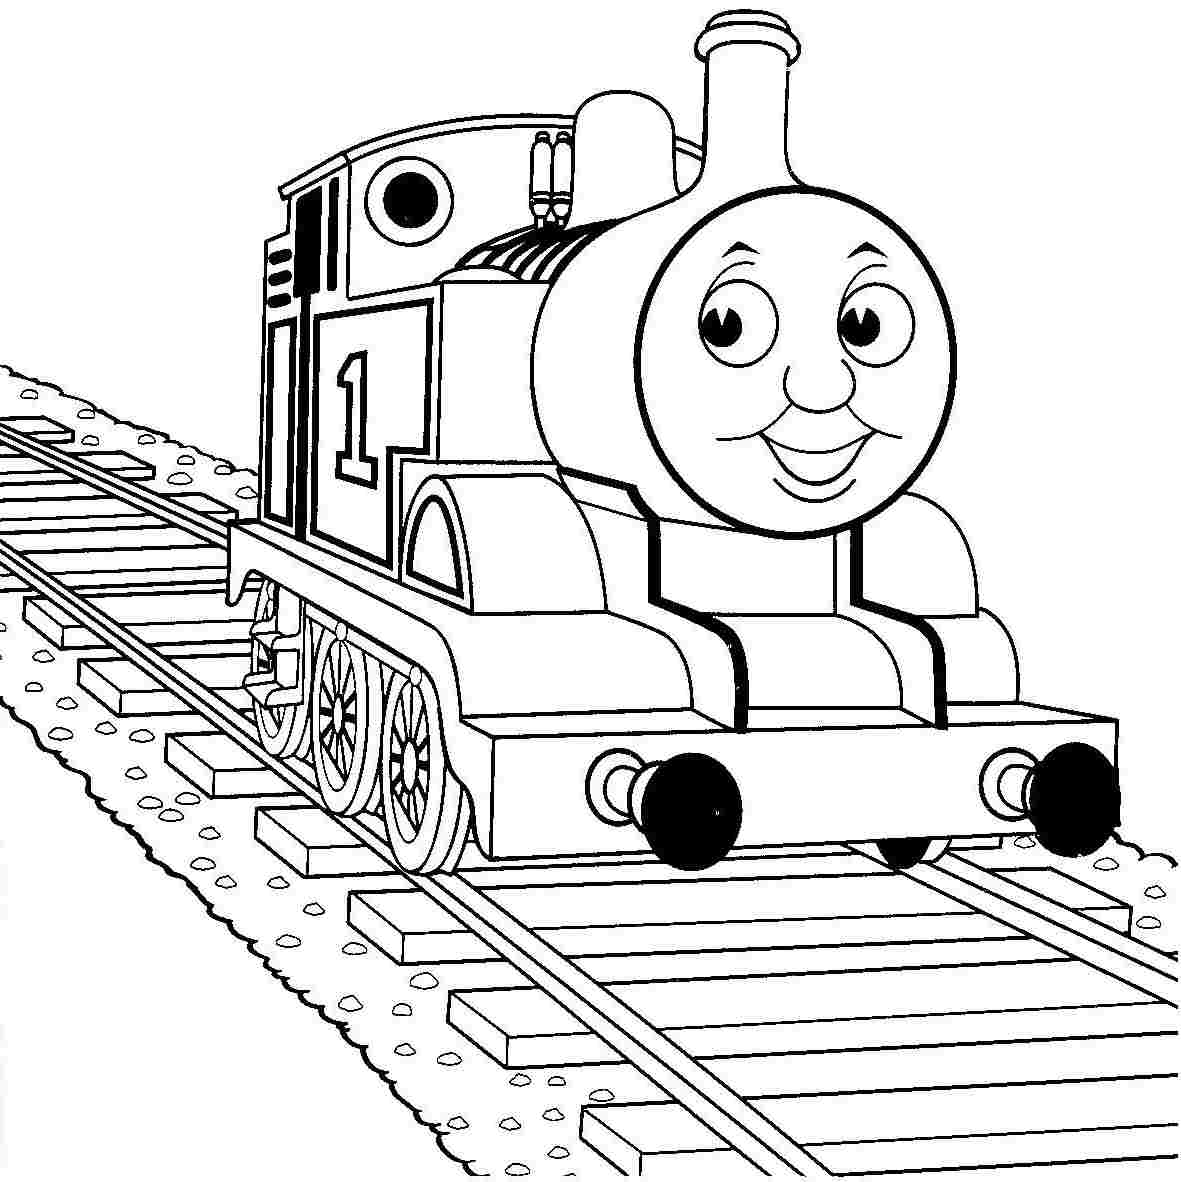 train coloring image simple train free download on clipartmag coloring image train